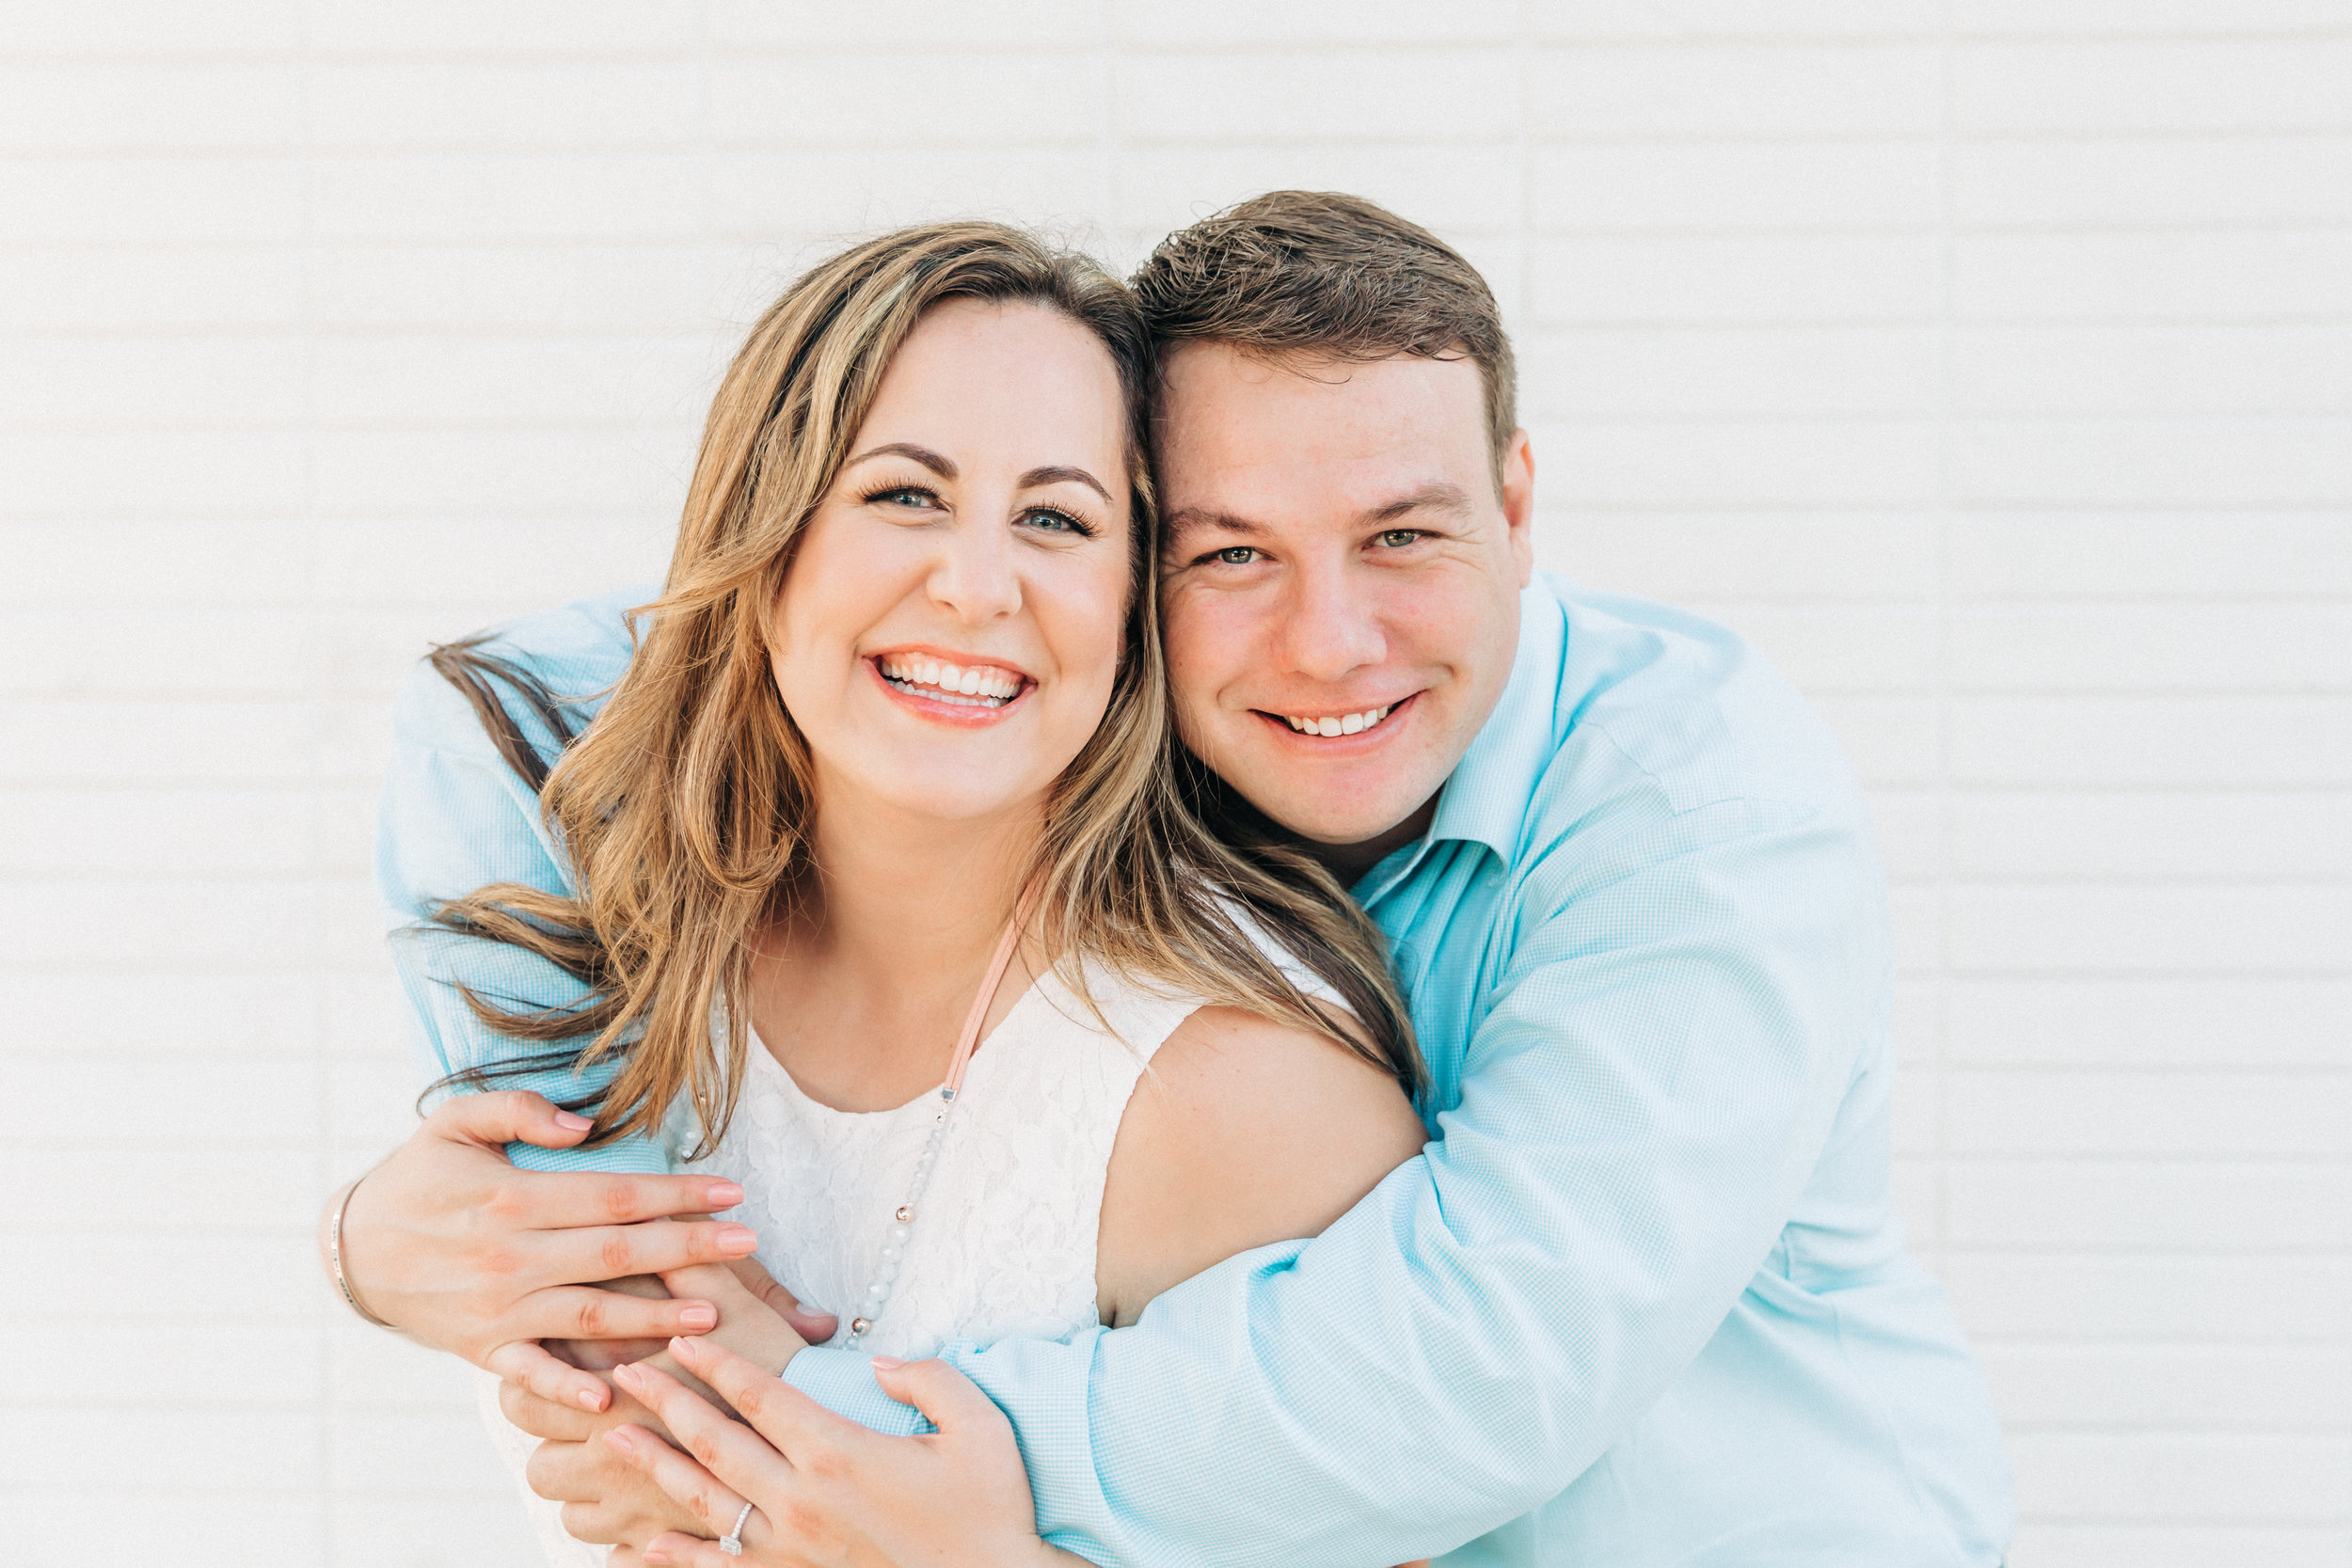 Fiona_JD_Engagement_Session_Previews-11.jpg